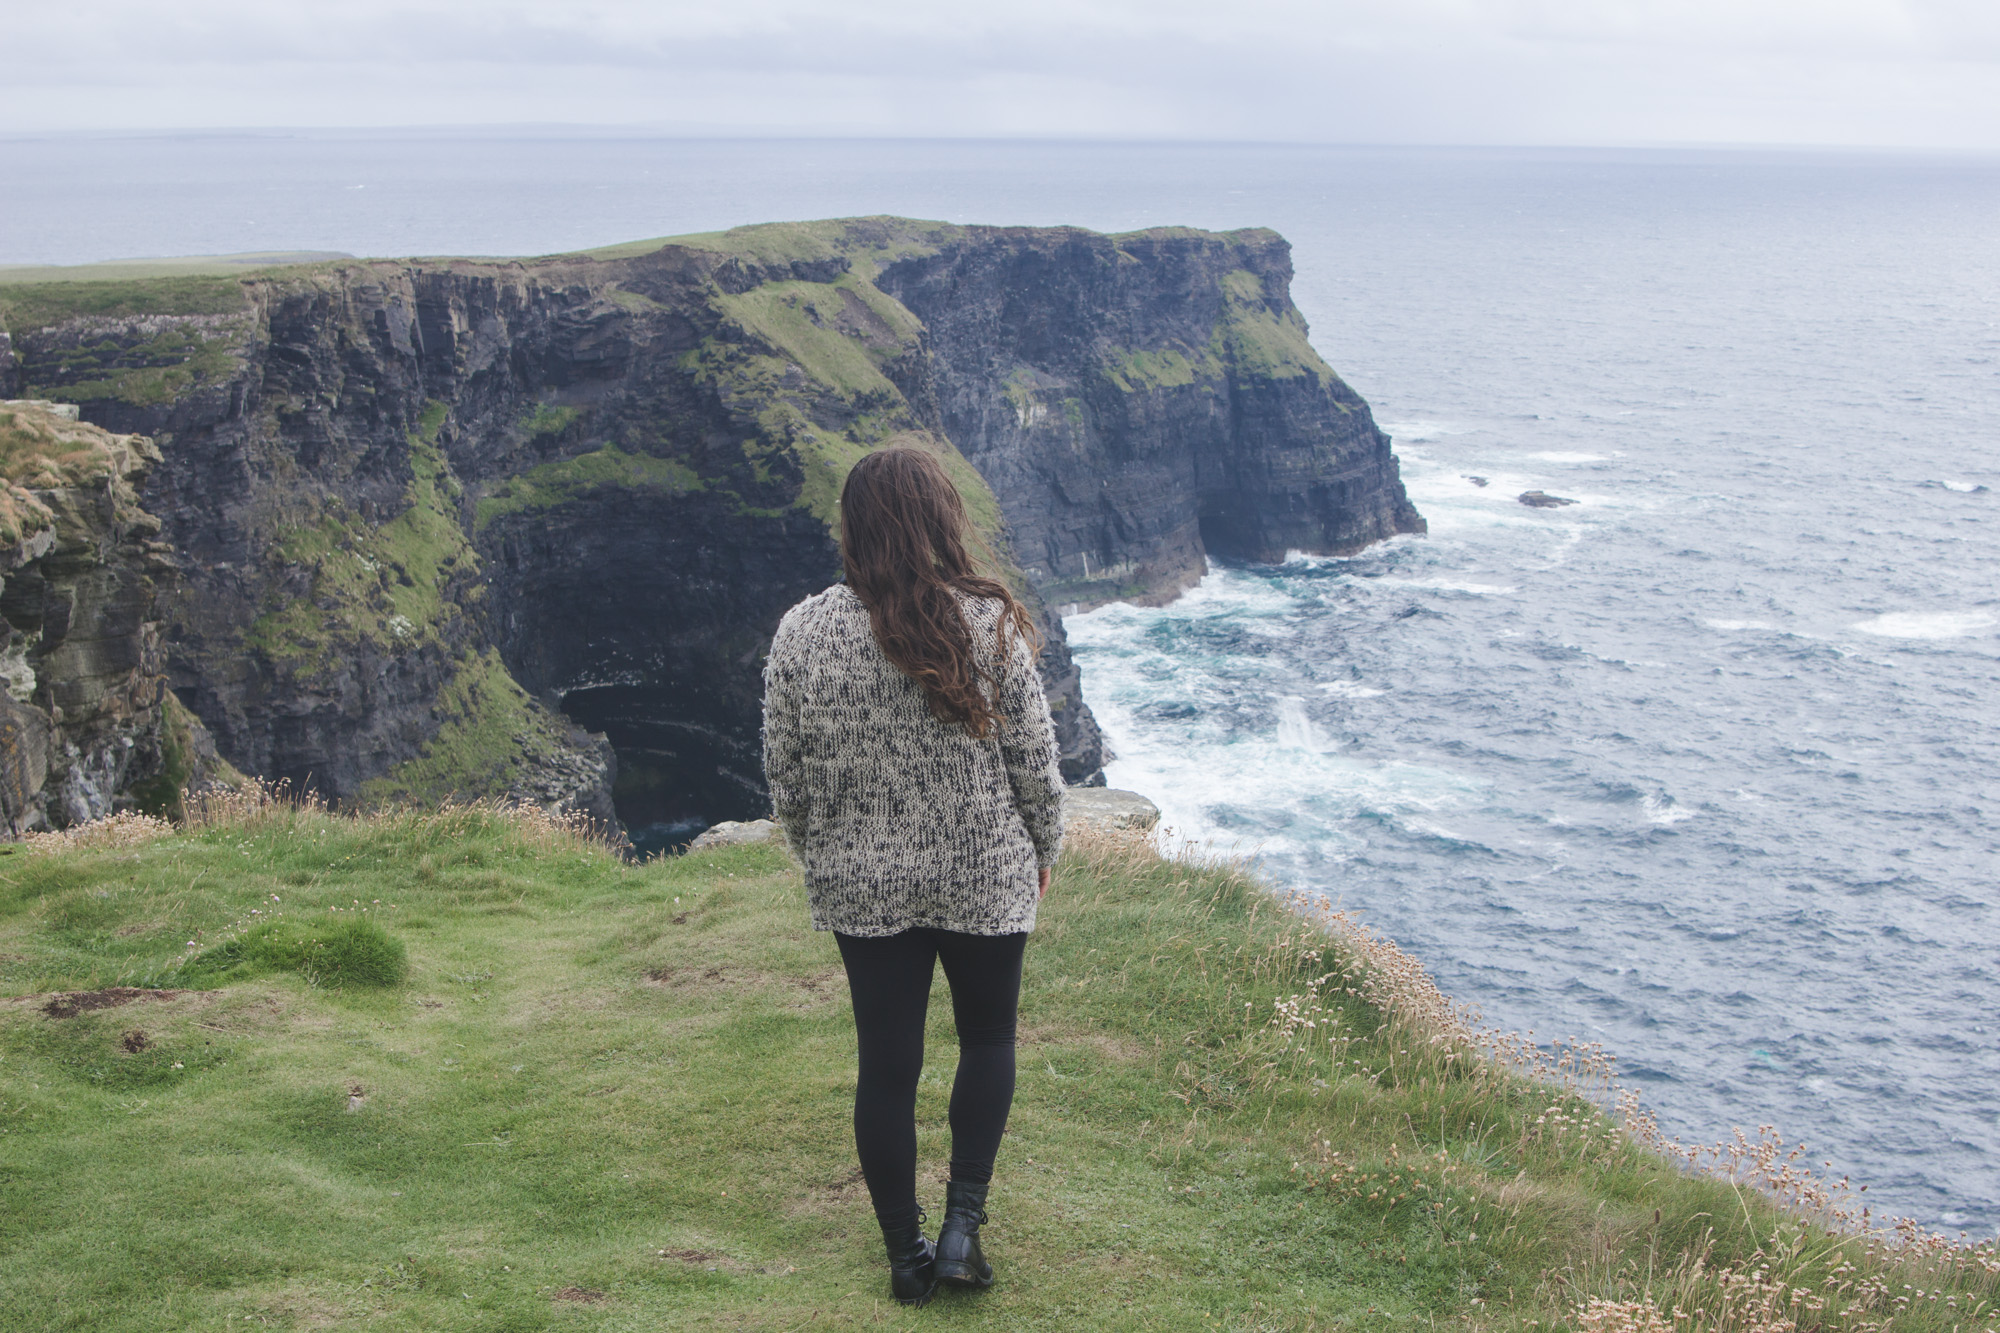 Kelsey standing on Hag's Head near the Cliffs of Moher in Ireland